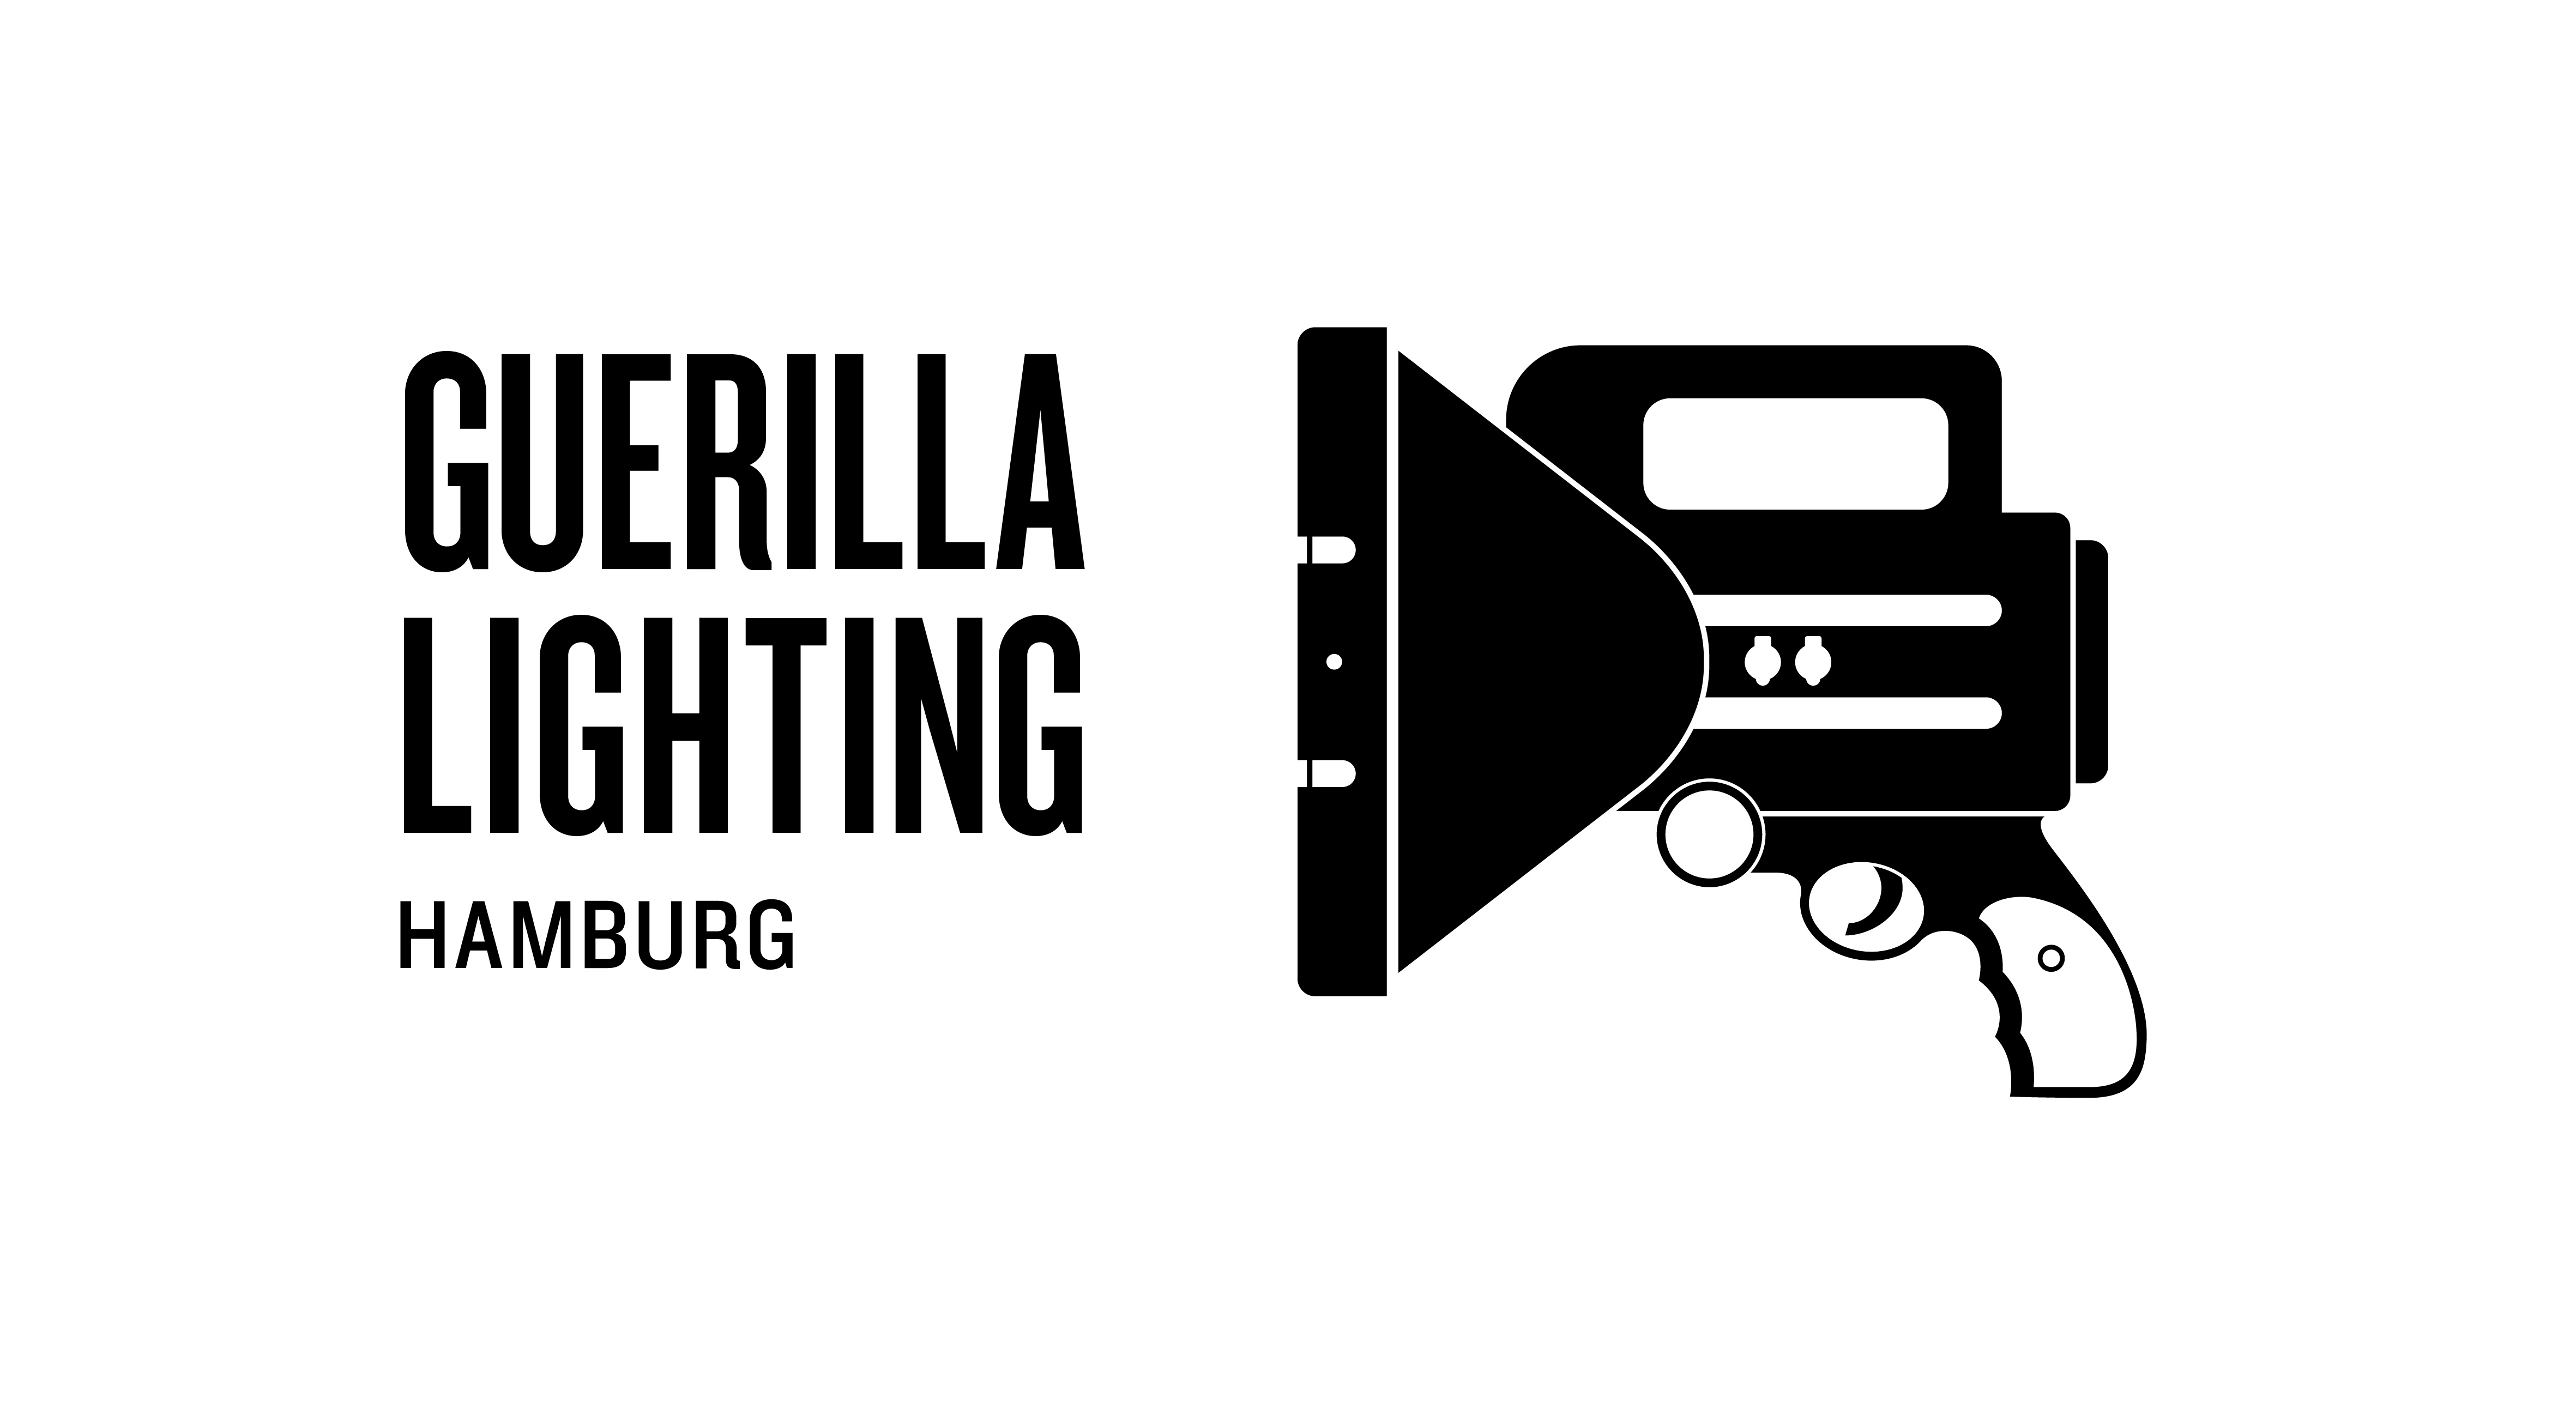 ON Grafik, wibberenz' design, Guerilla Lighting, Hamburg, temporäre Beleuchtung eines städtischen Gebäudes, öffentlicher Raum, Taschenlampe, Leuchten